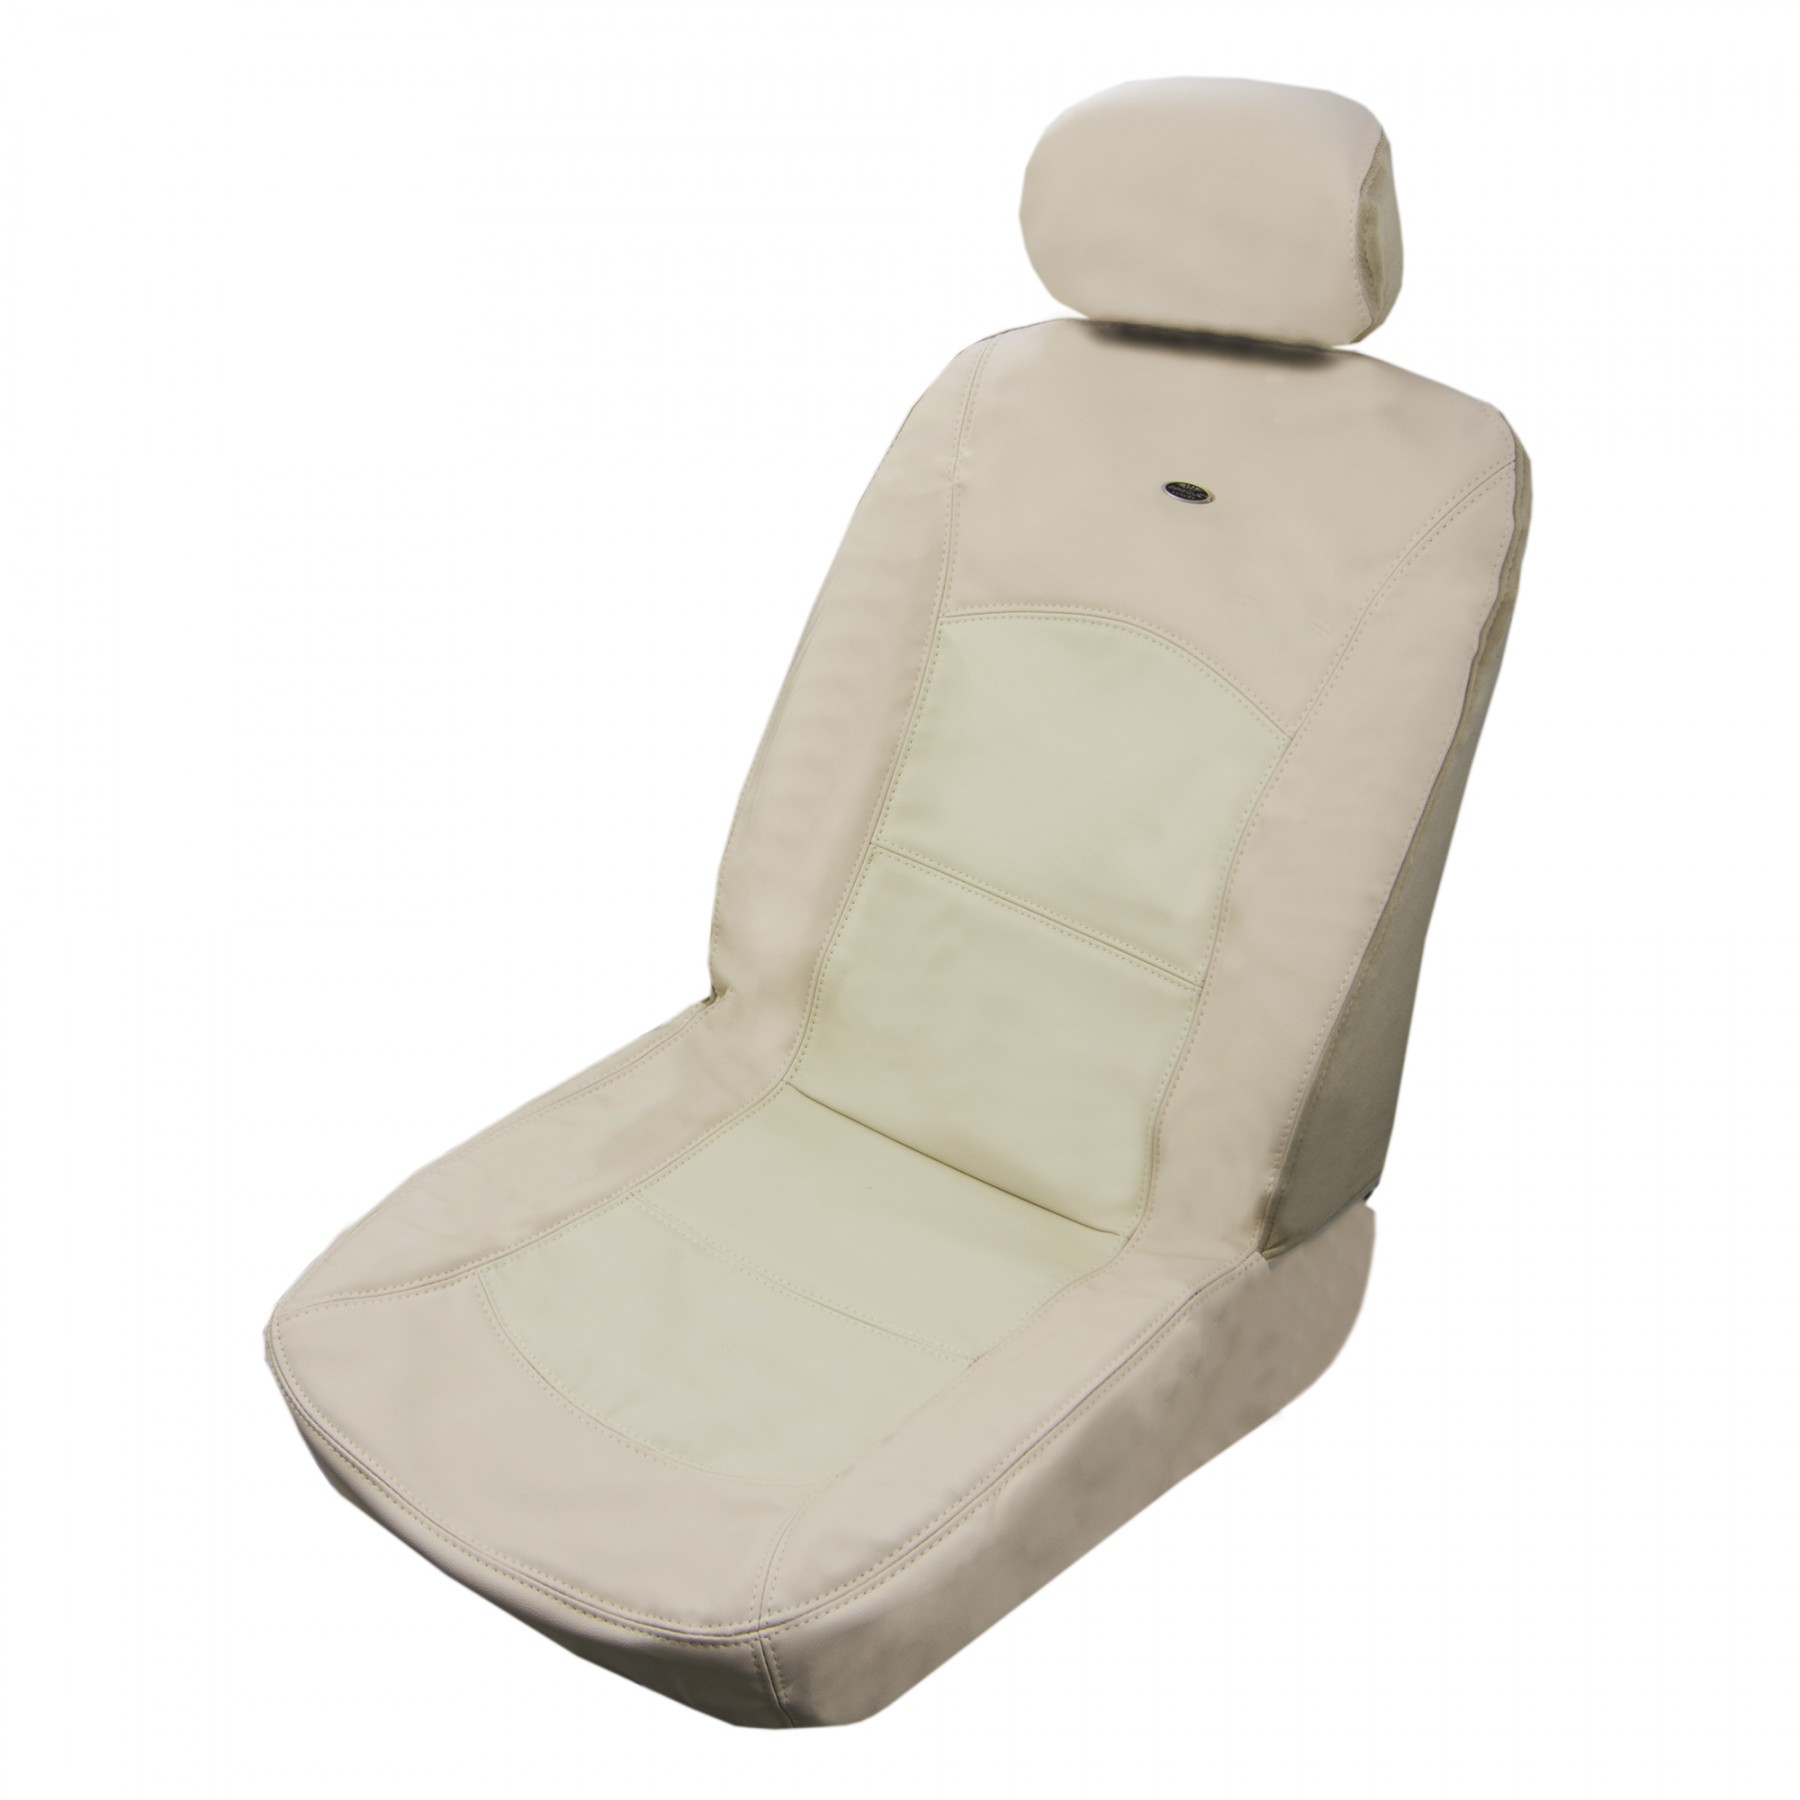 Luxurious Tan Leather Car Front Seat Cover